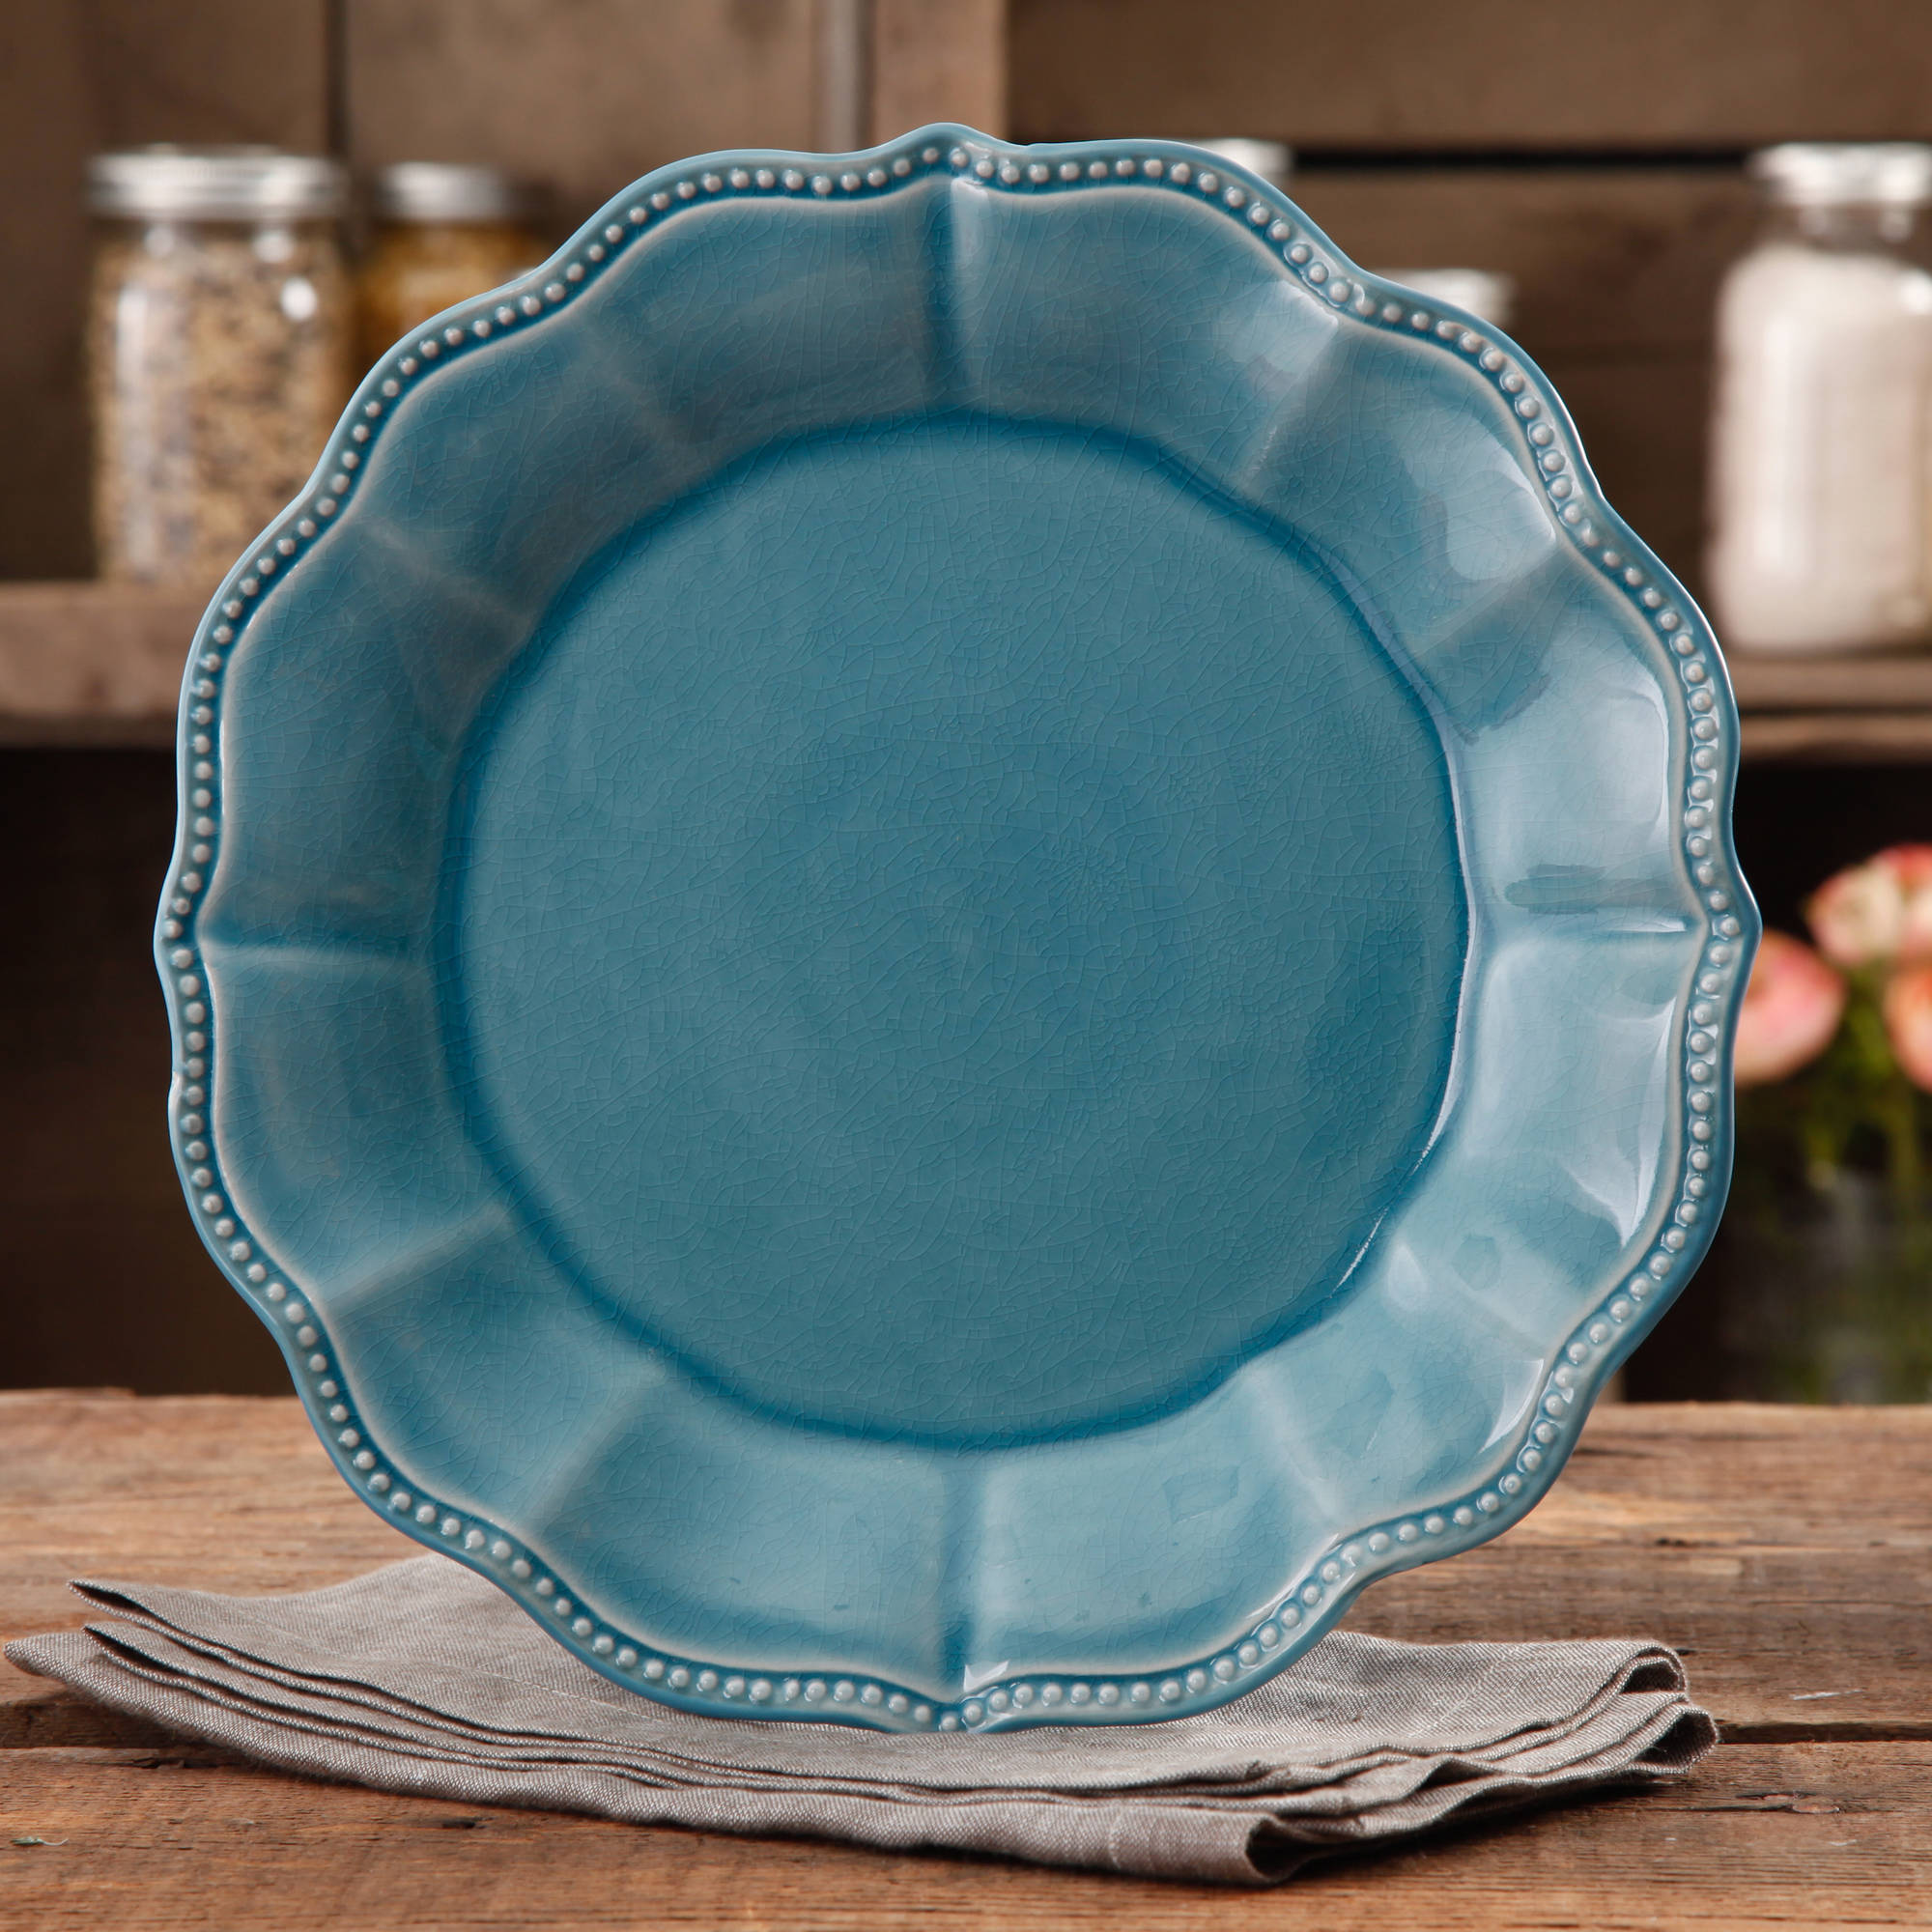 & The Pioneer Woman Paige Crackle Glaze Dinner Plate Linen - Walmart.com